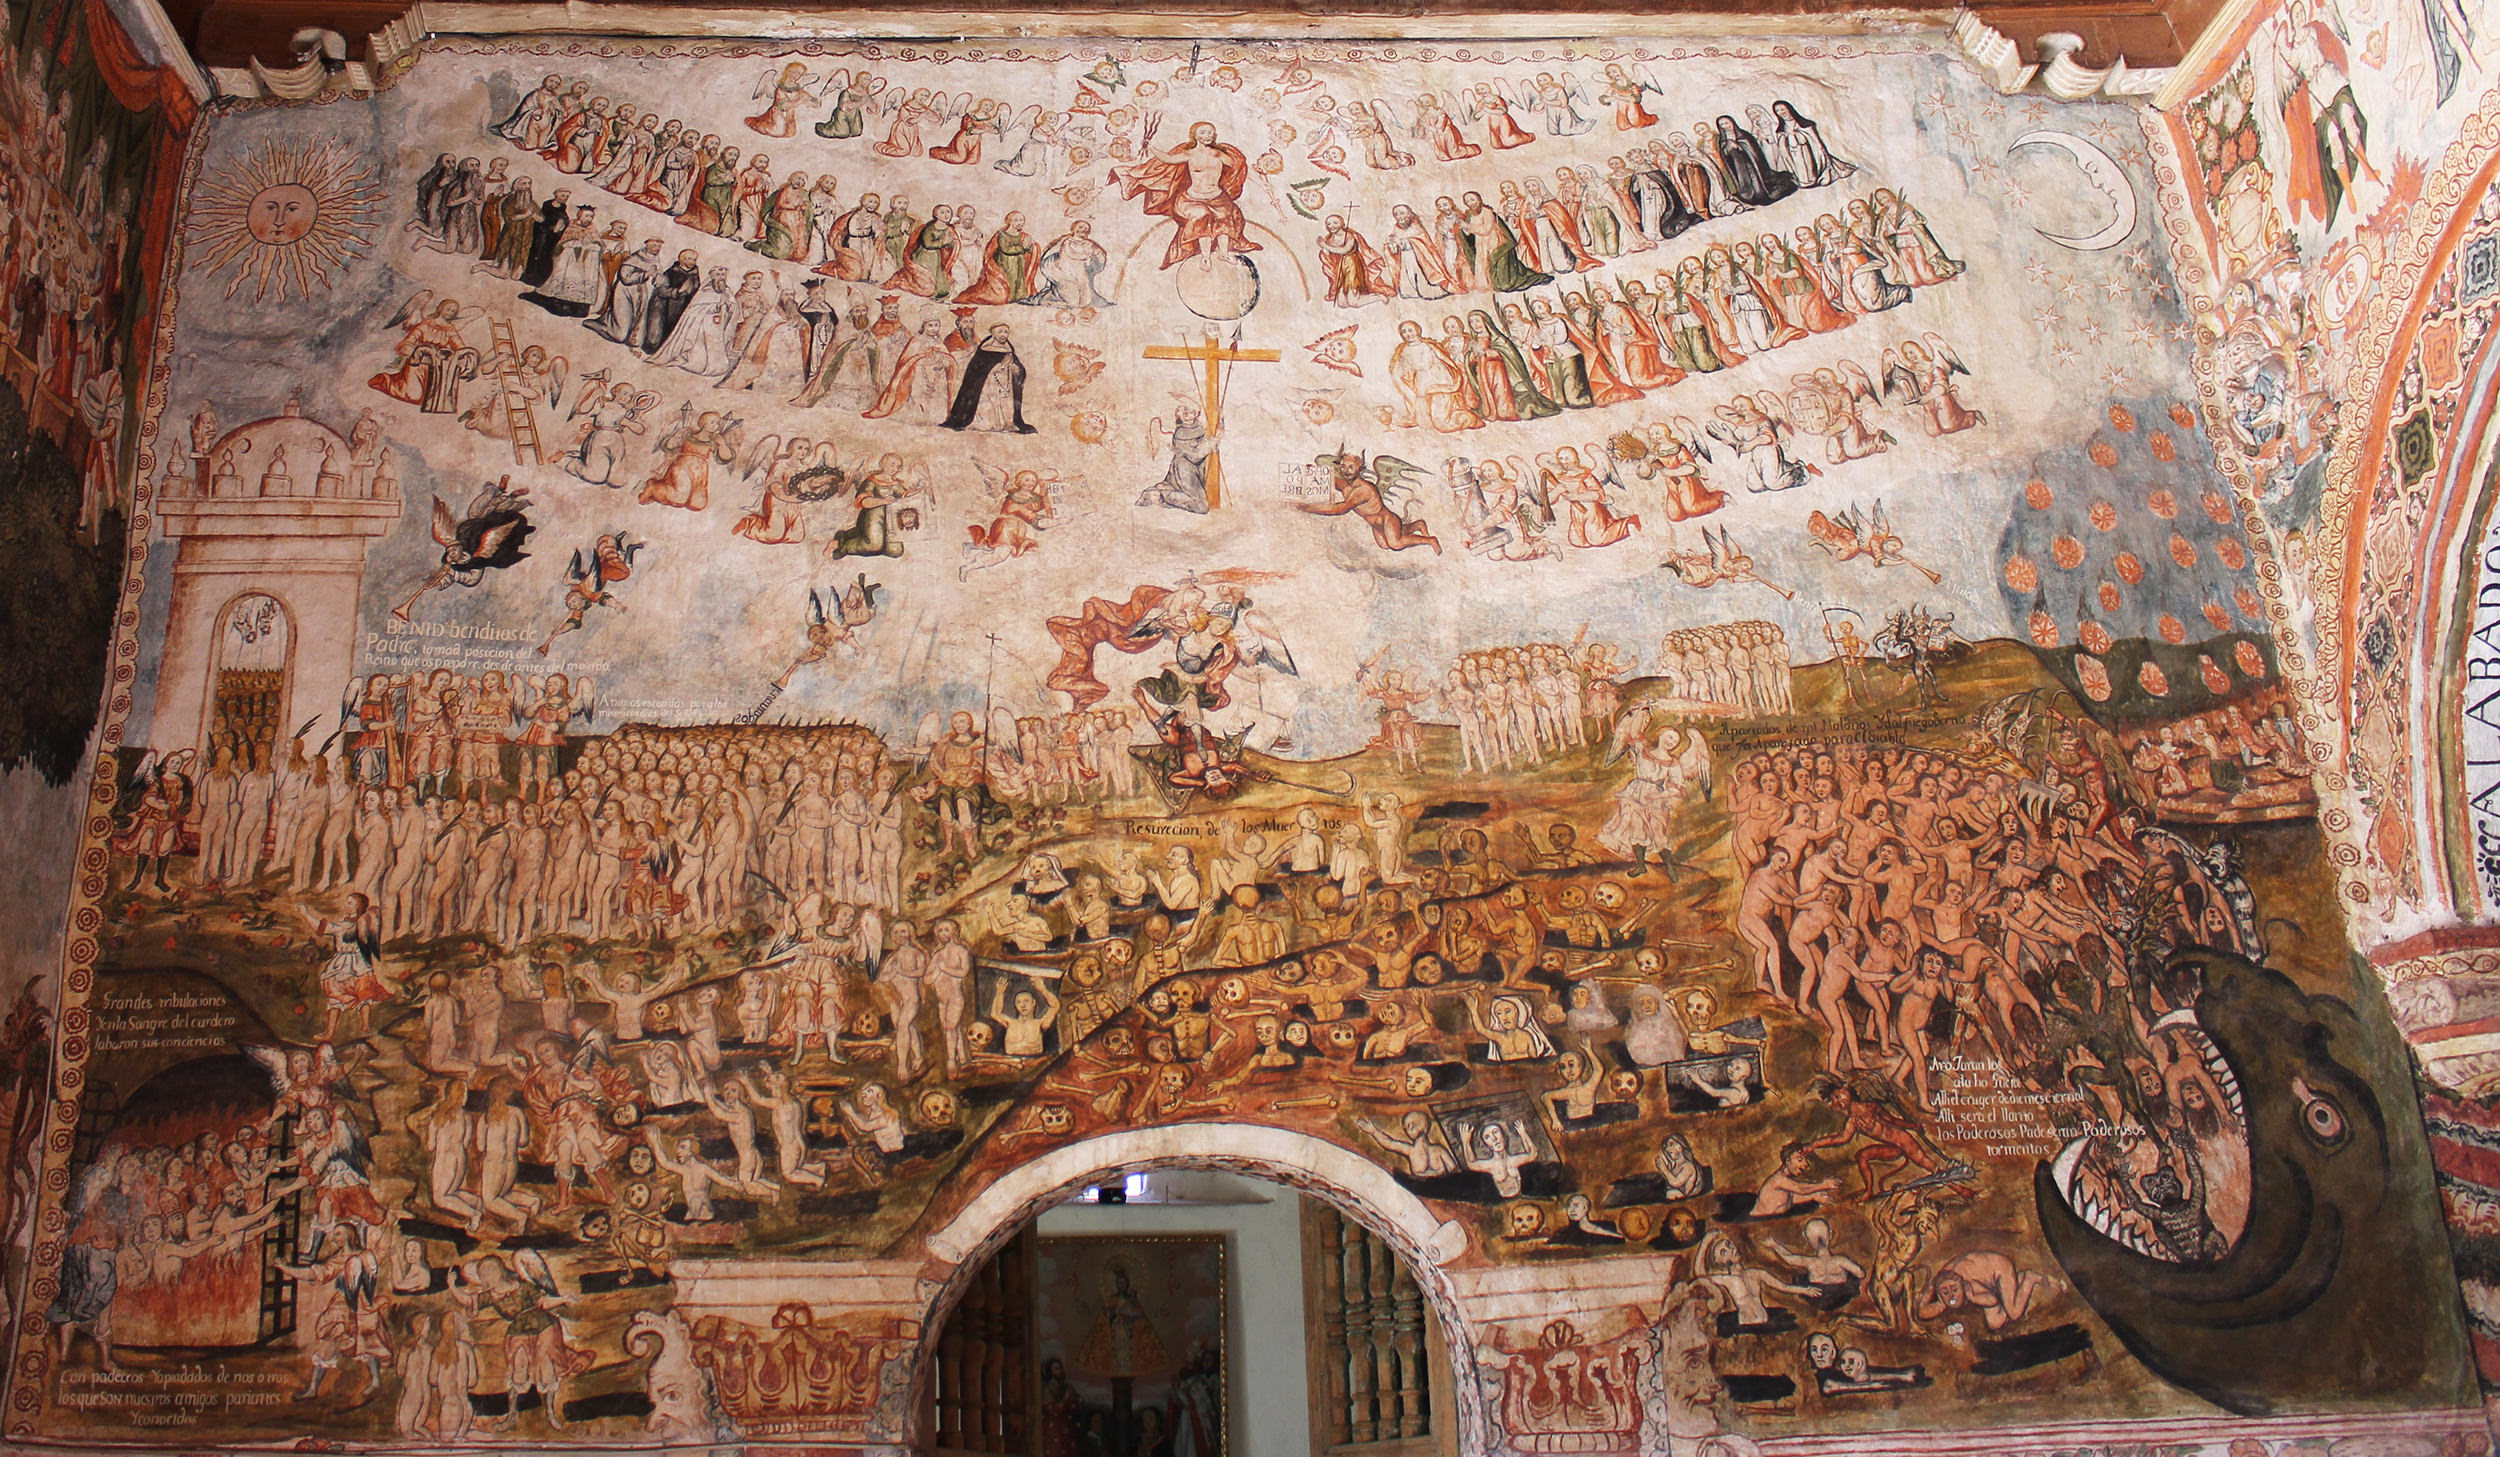 Fig. 39 Last Judgment by Tadeo Escalante, 1802. Church of Huaro, Quispicanchi Province. Photo by author. Note similarities with the mural at Zurite, particularly in the upper register of the composition.